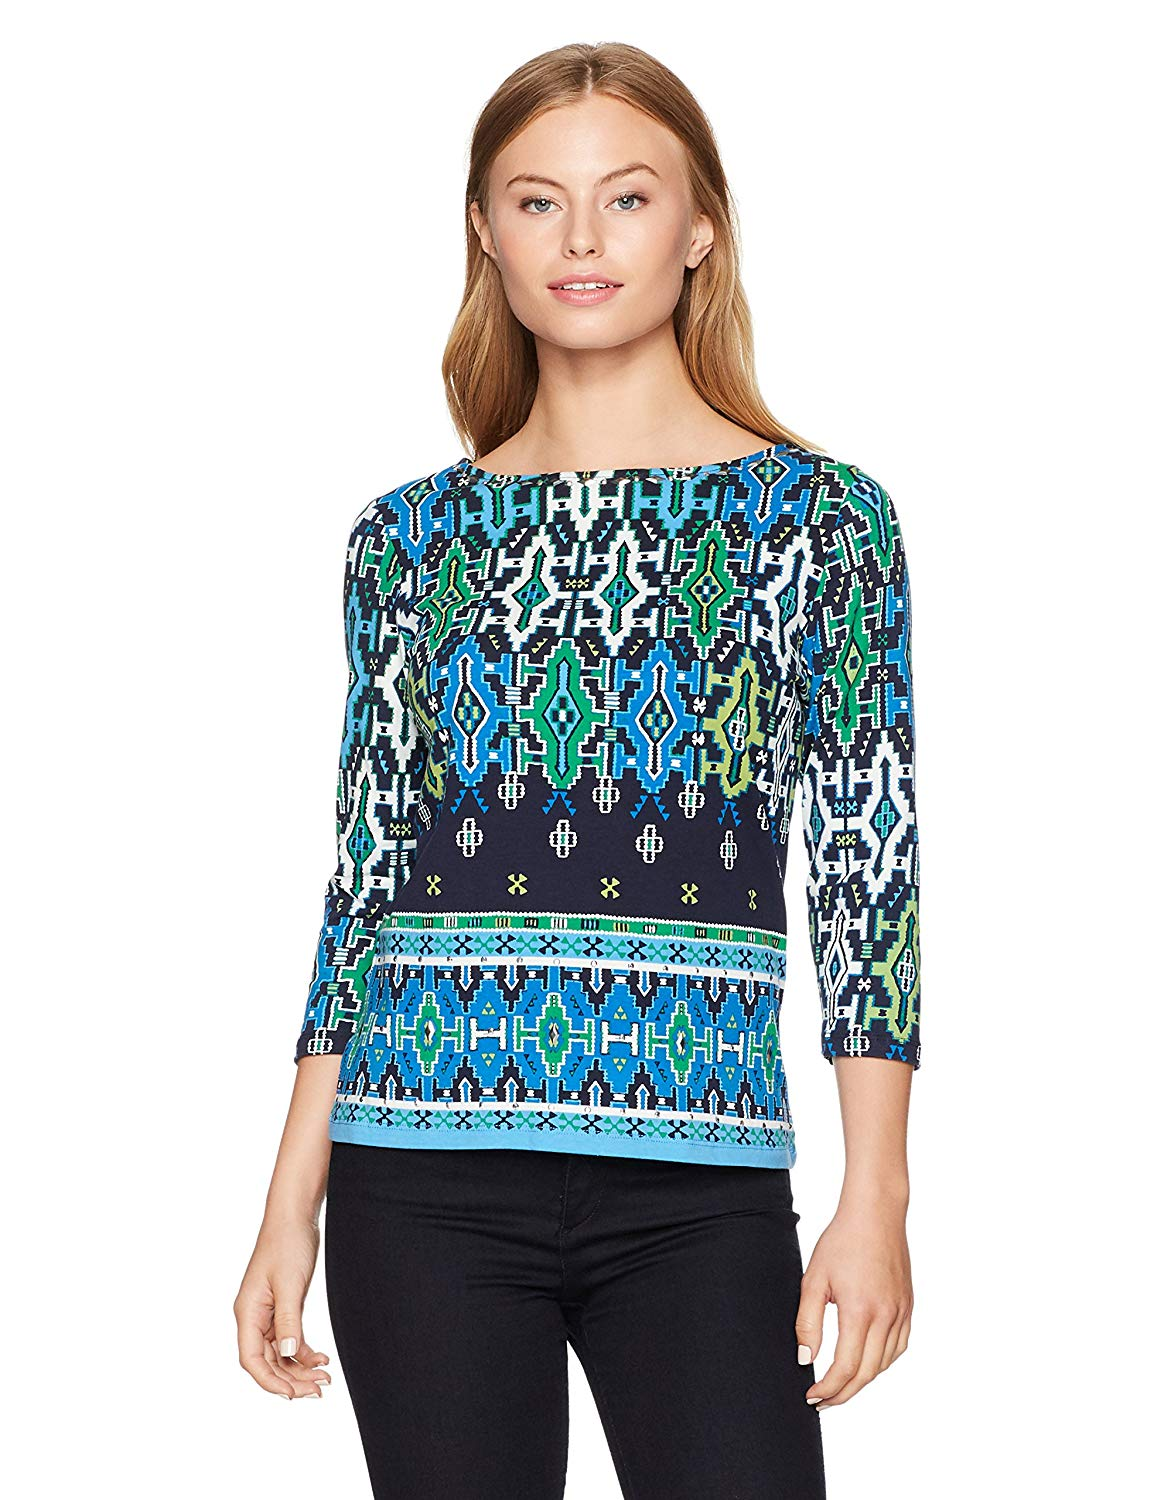 134a65262de Get Quotations · Ruby Rd. Women's Petite Embellished Boat Neck Handloom  Border Printed Knit Top